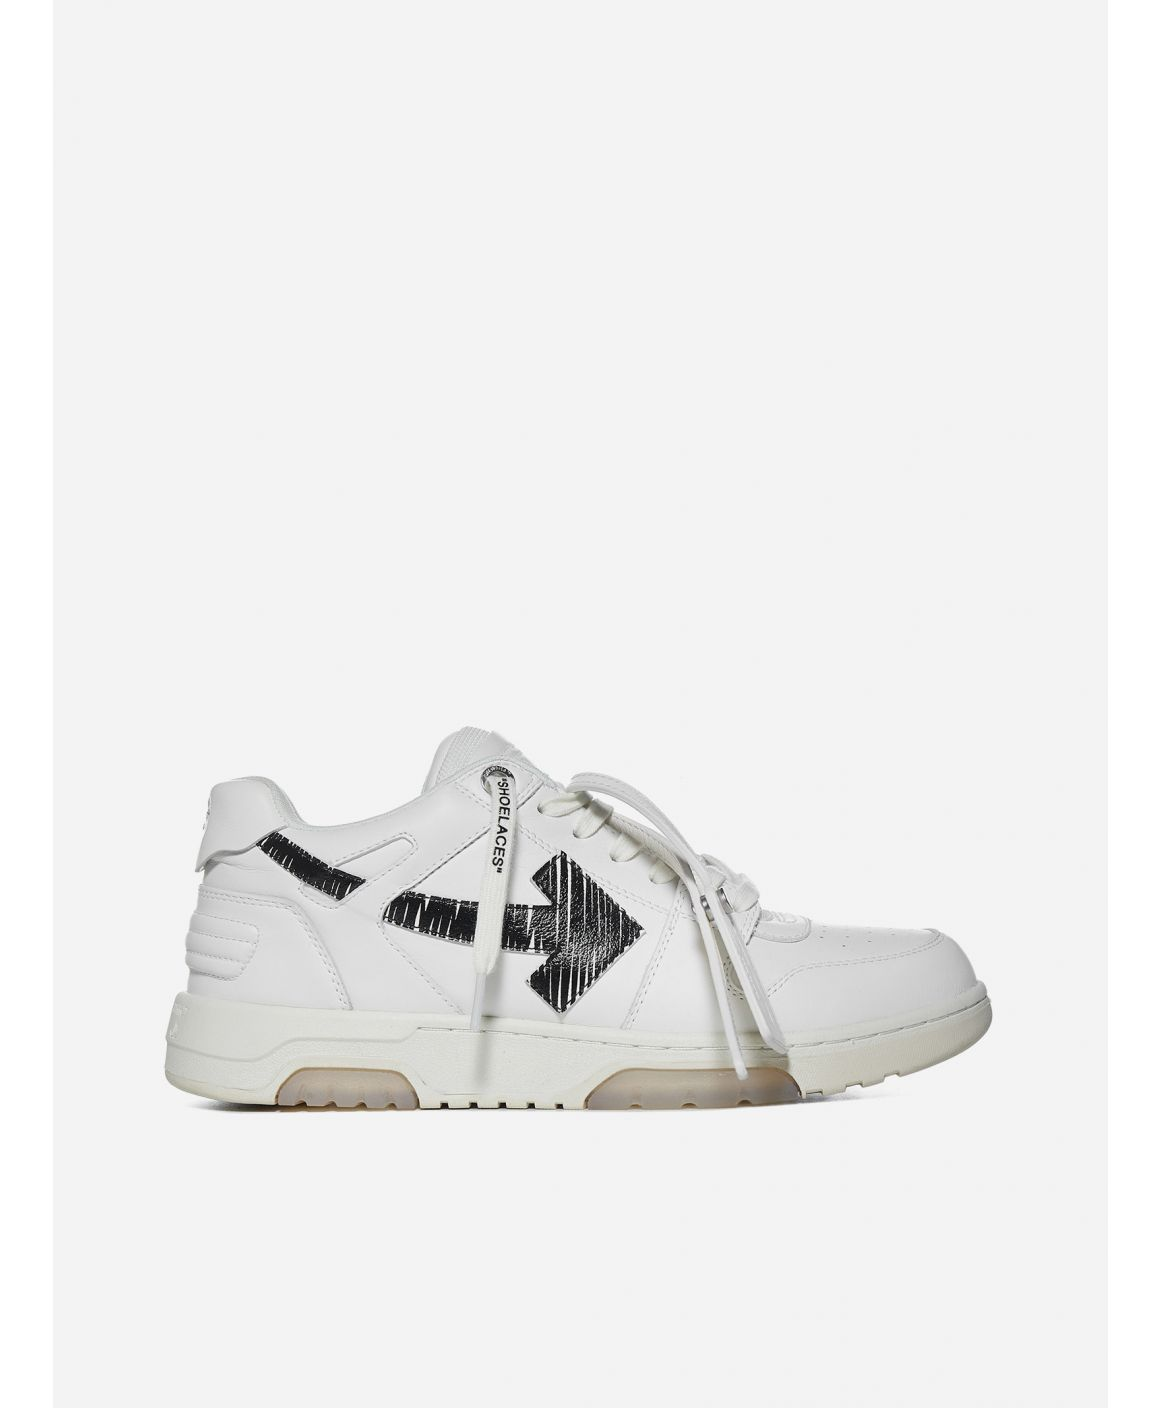 "Out Of Office ""ooo"" leather sneakers"